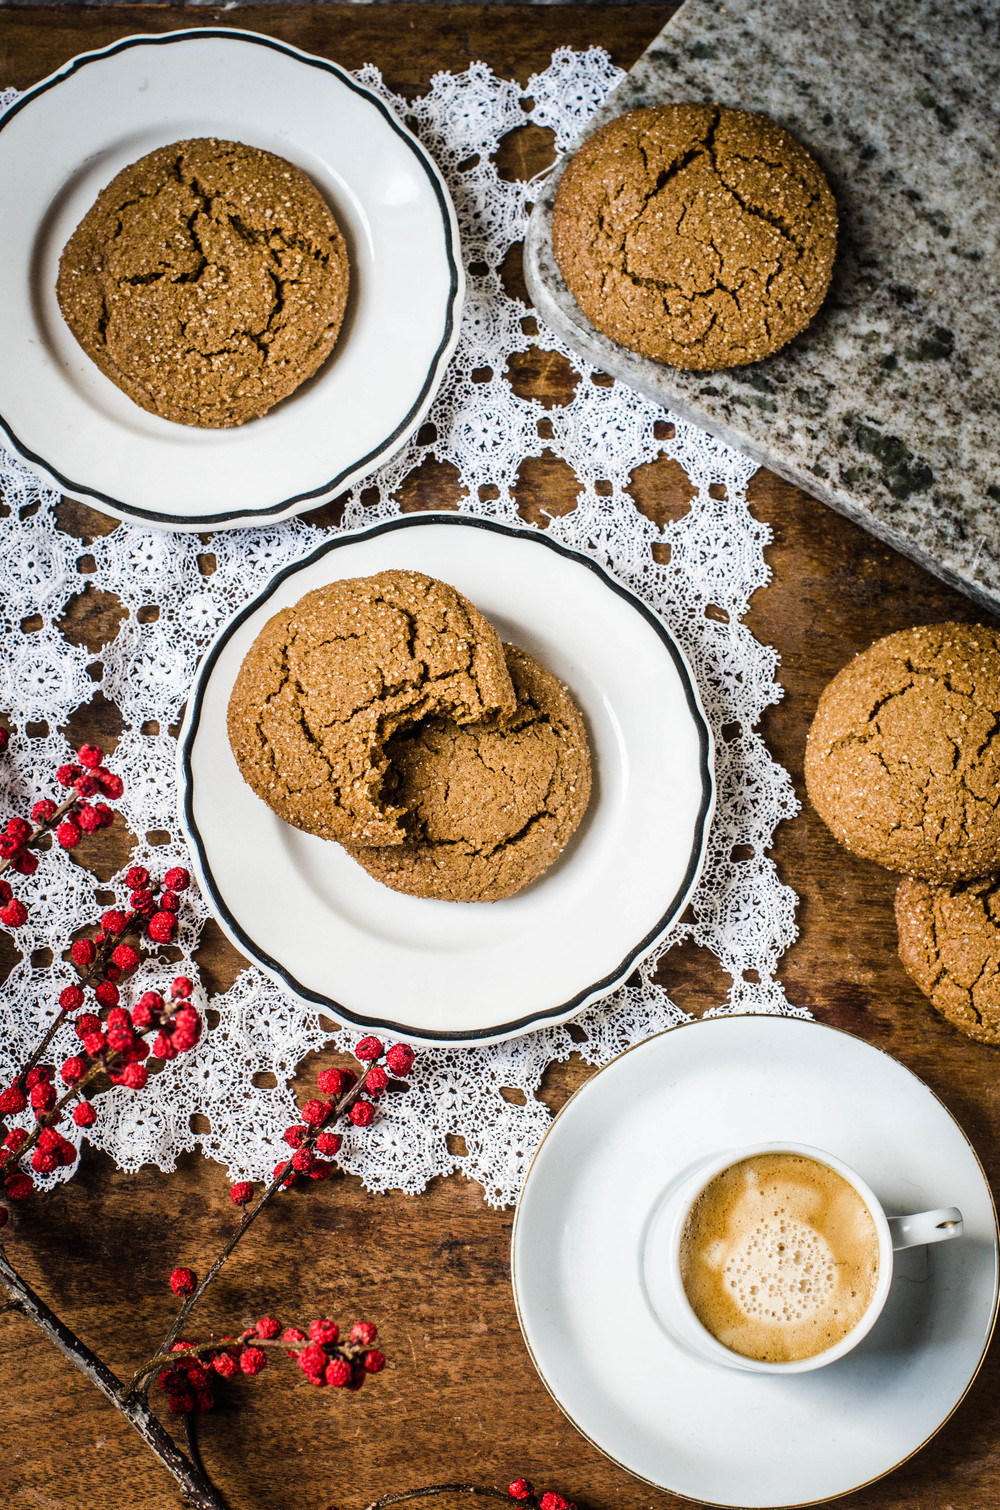 ROSE & IVY Journal Chewy Ginger Molasses Cookies